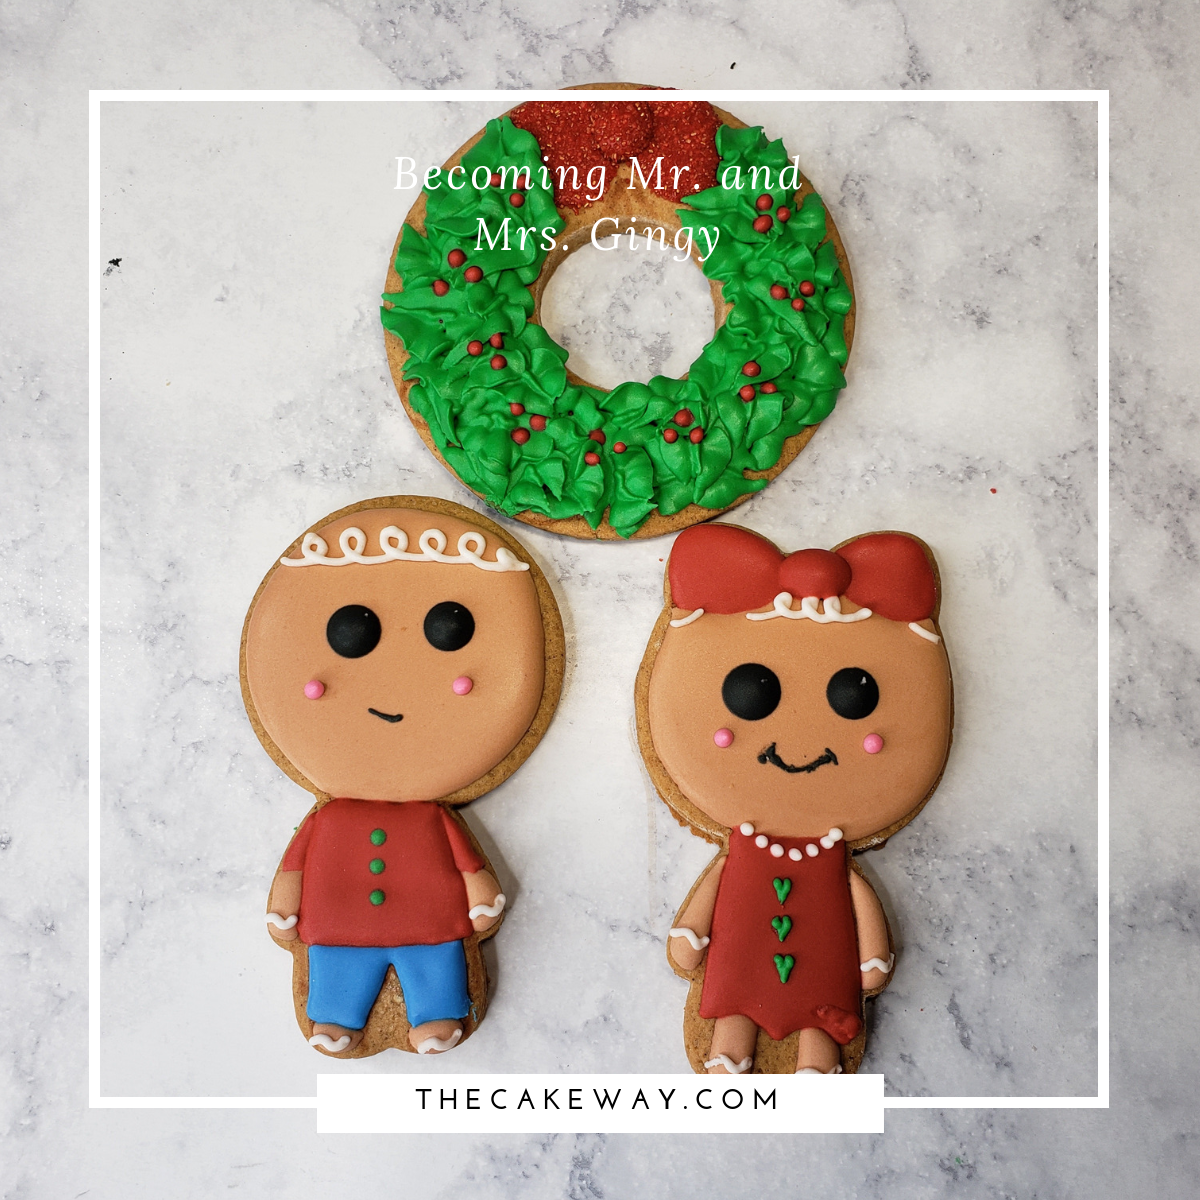 How To Decorate Mr. and Mrs. Gingerbread Cookie Set